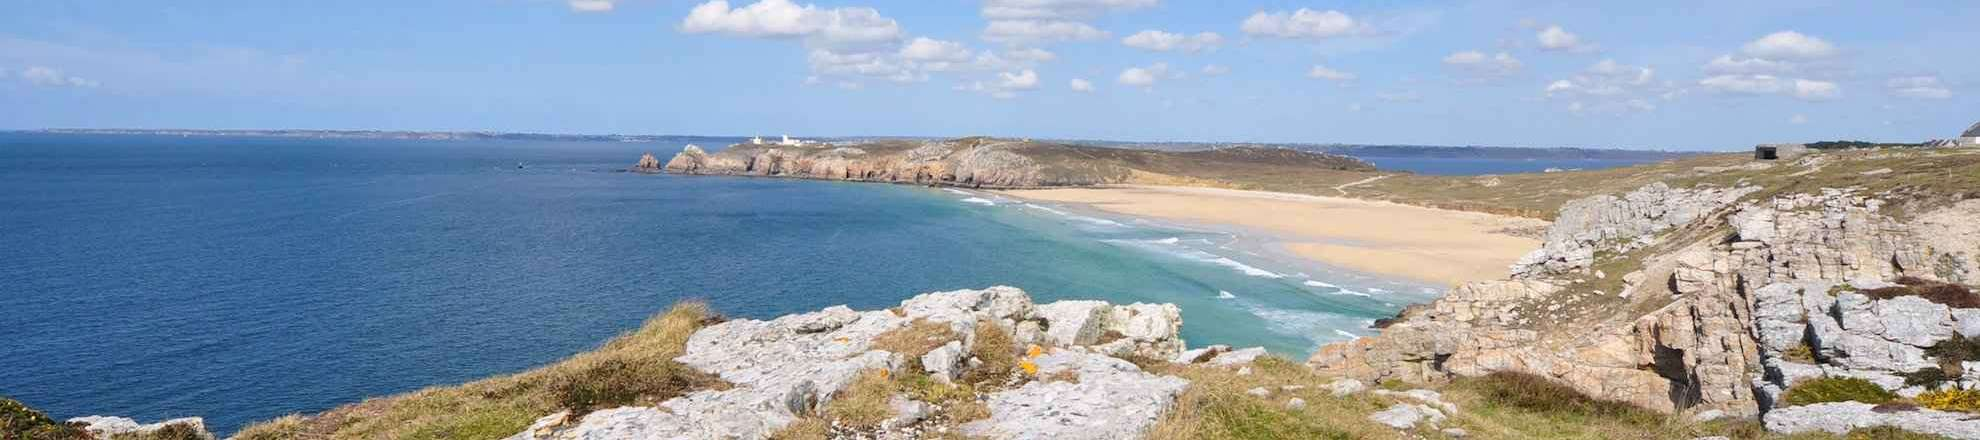 Vacation Brittany in Finistère, the sandy beach Pen Hat of Camaret-sur-mer is one of the most beautiful beaches of Brittany